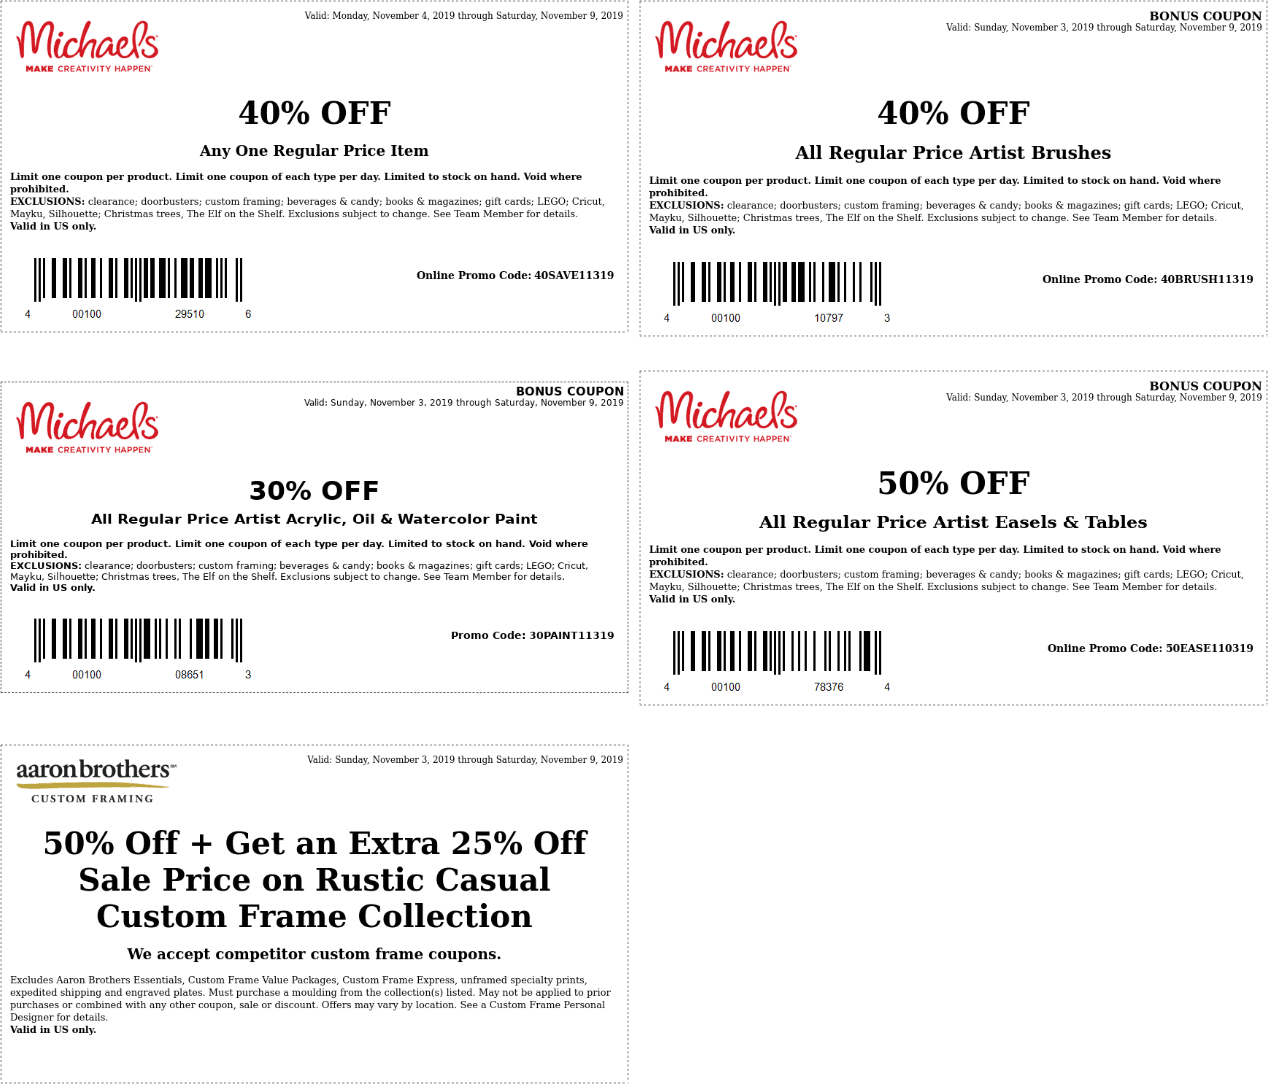 Michaels Coupon January 2020 40% off a single item at Michaels, or online via promo code 40SAVE11319